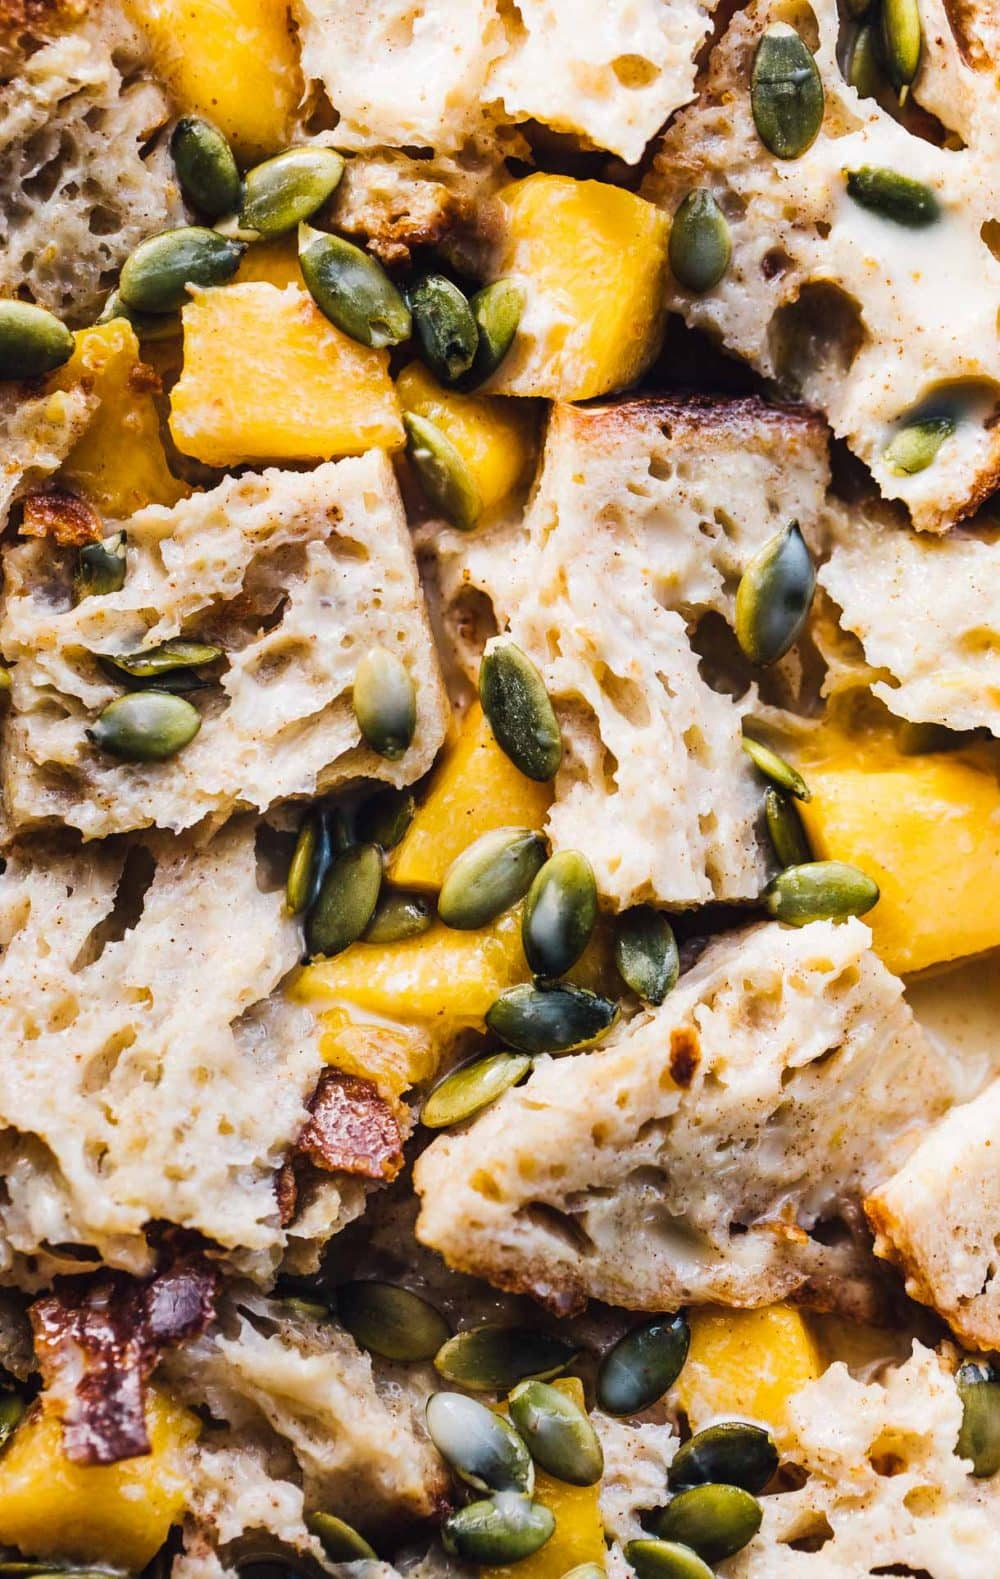 bread cubes with mangos and pepita seeds scattered on top